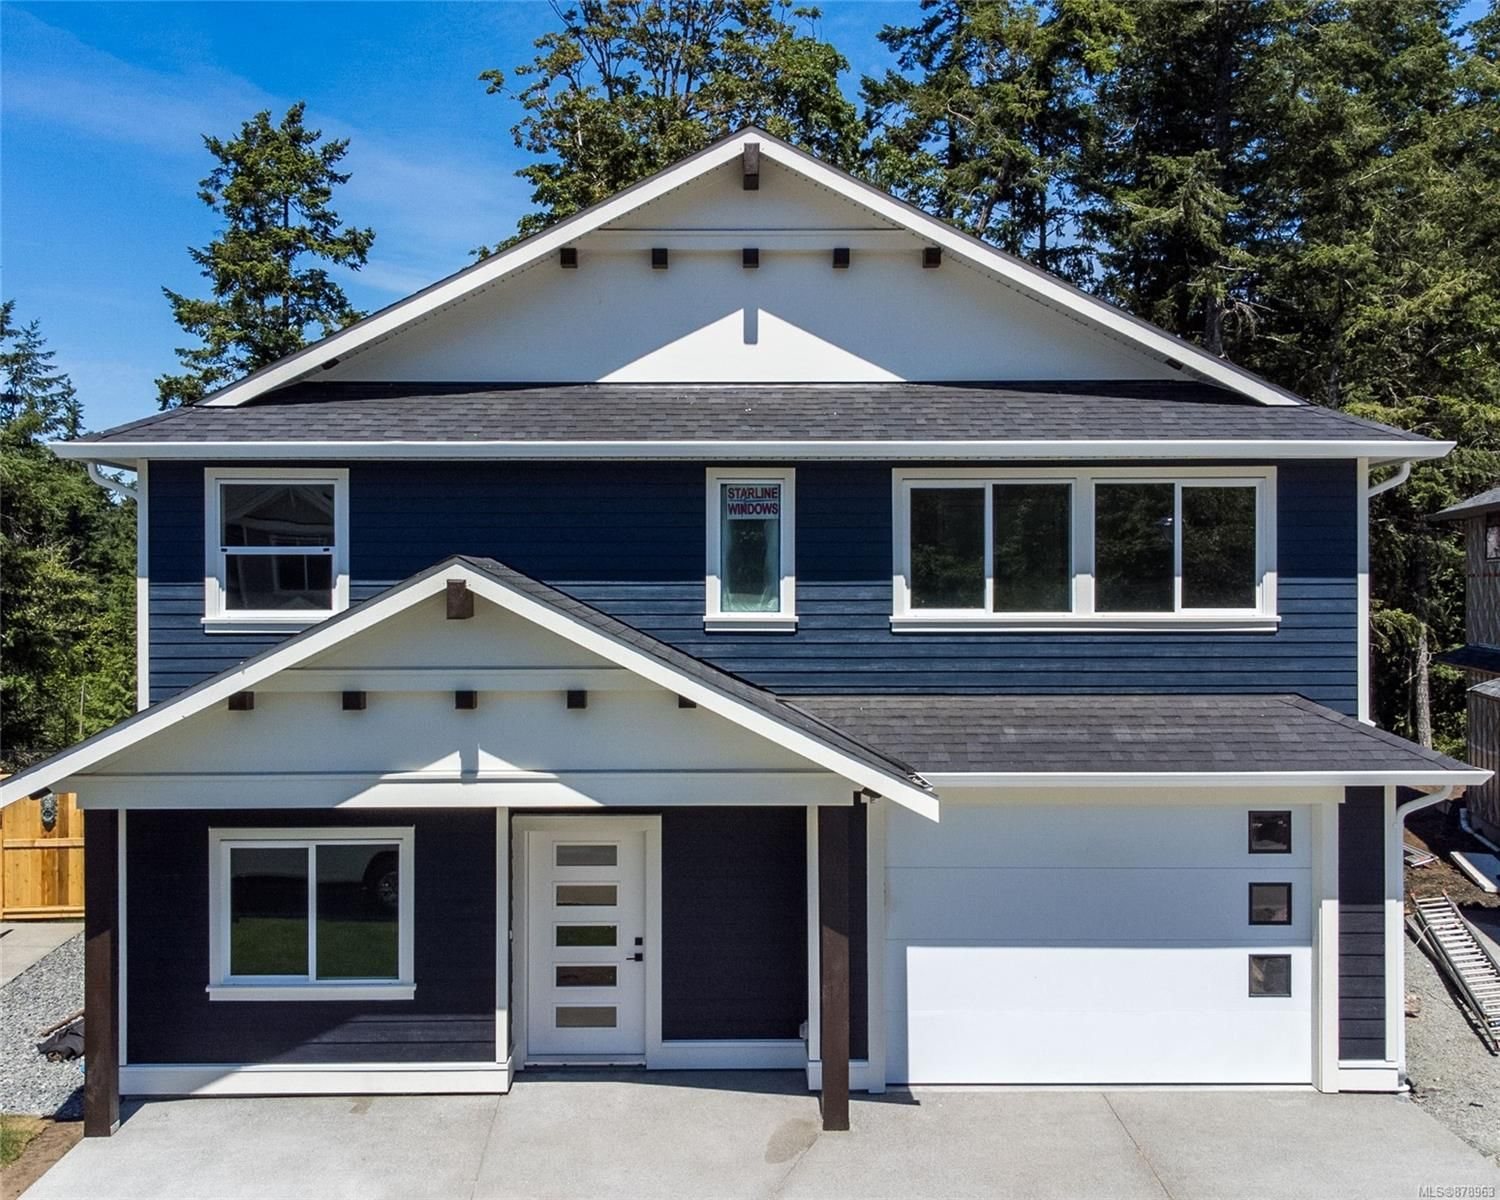 Main Photo: 916 Blakeon Pl in : La Olympic View House for sale (Langford)  : MLS®# 878963